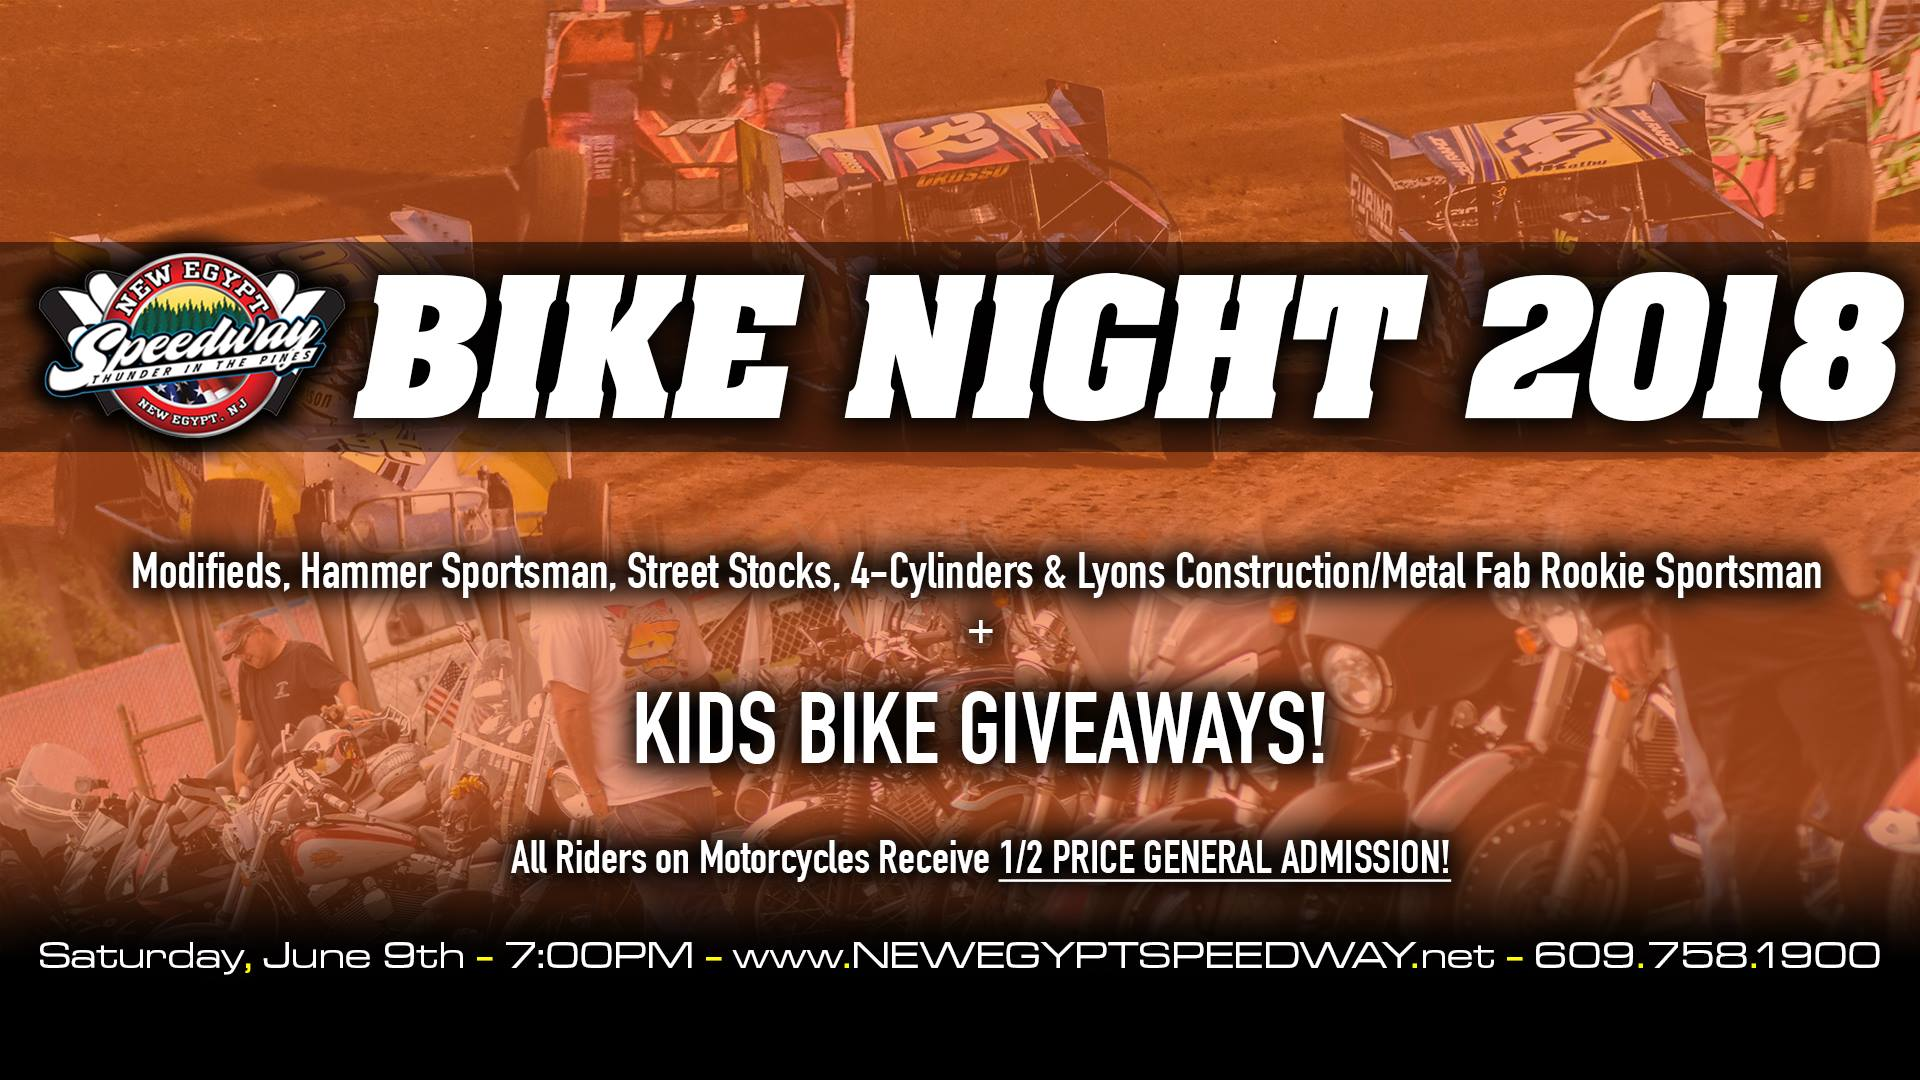 BIKE NIGHT IS UP NEXT AT NEW EGYPT SPEEDWAY